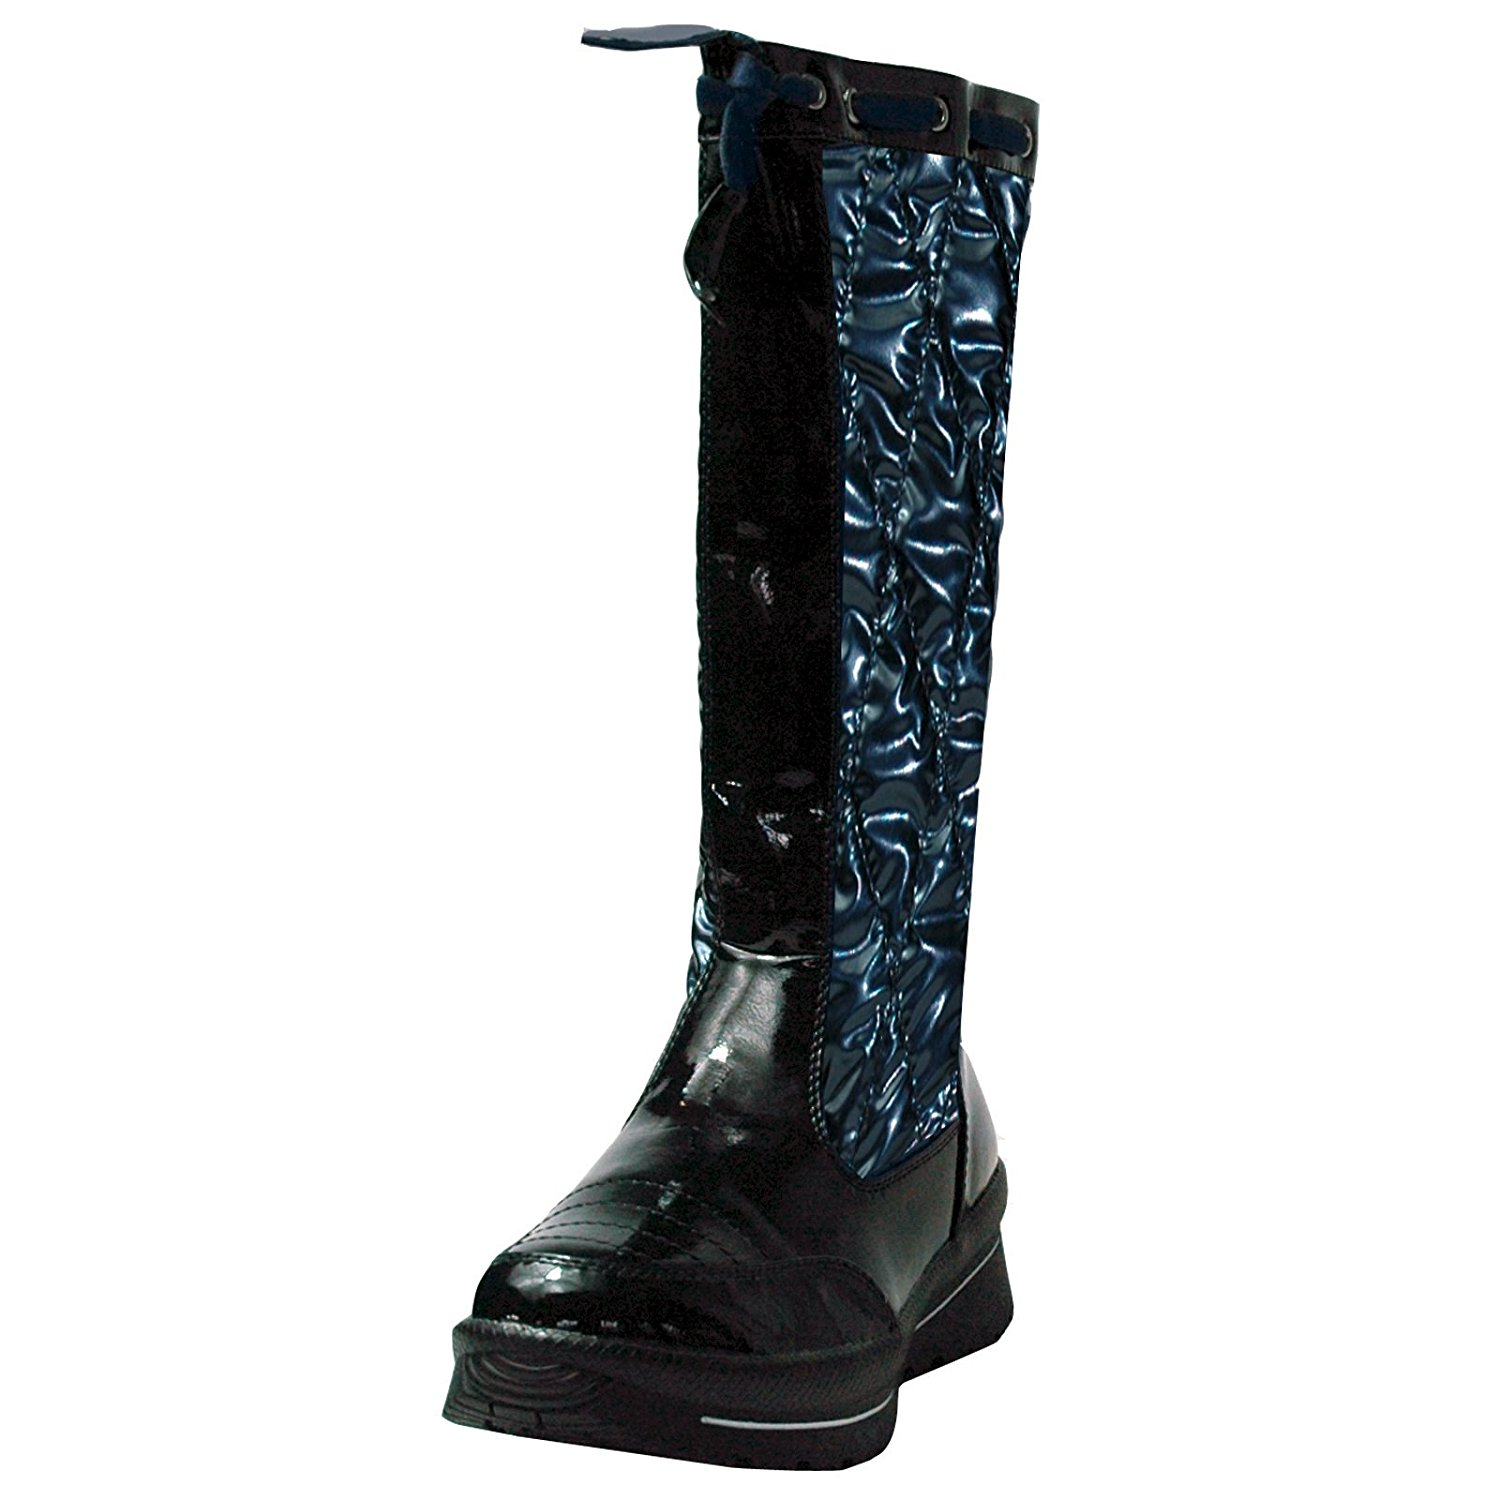 edff519431b Cheap Caprice Kania Boots, find Caprice Kania Boots deals on line at ...